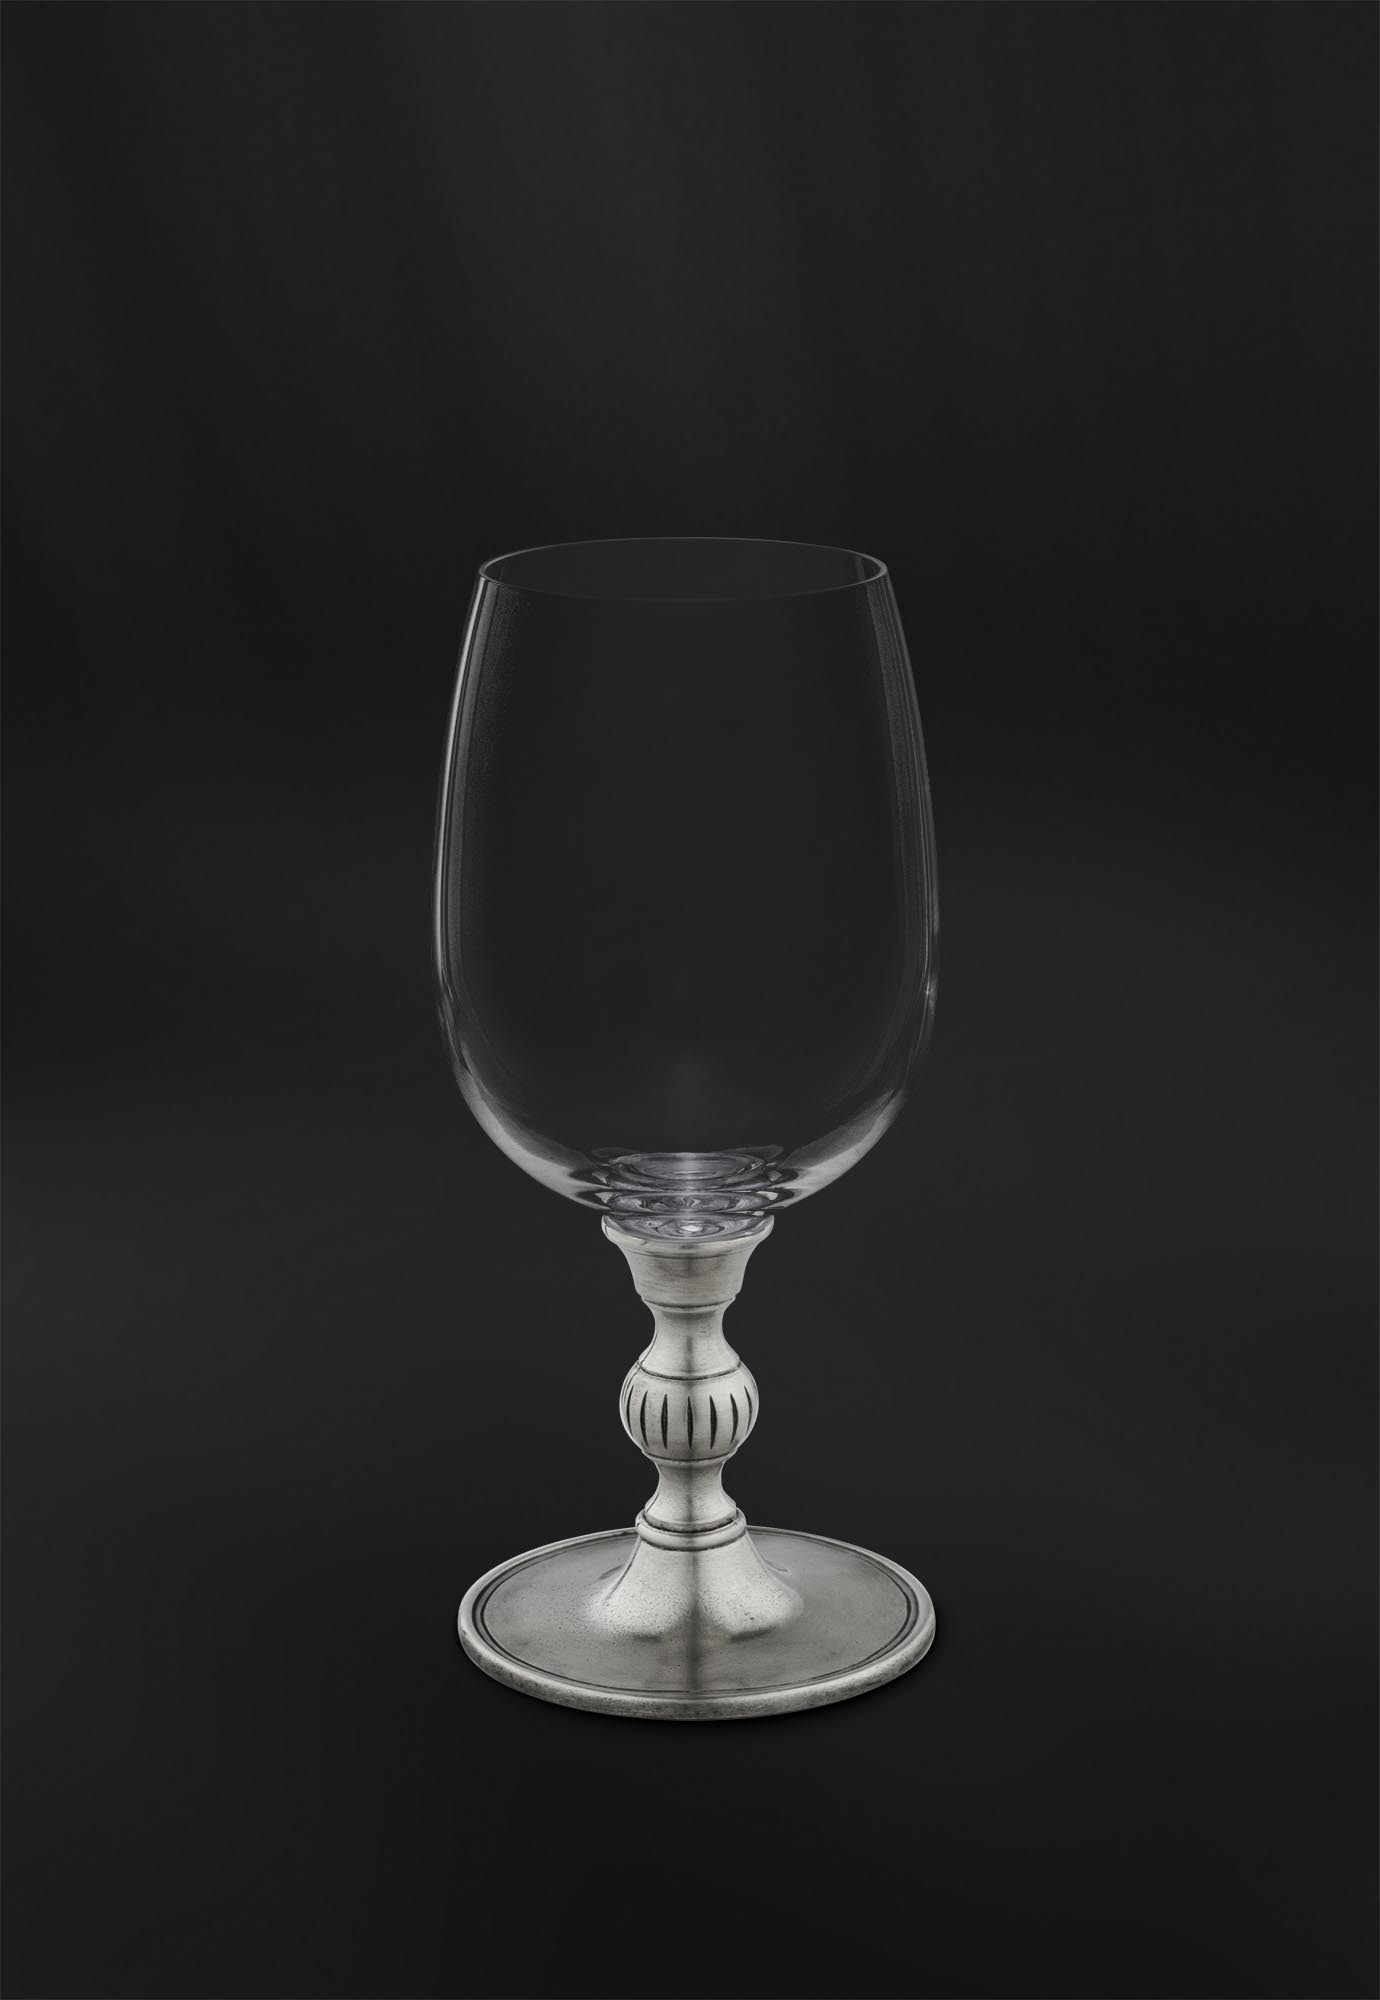 Weinkelch Glas Crystal And Pewter Wine Glass Art 807